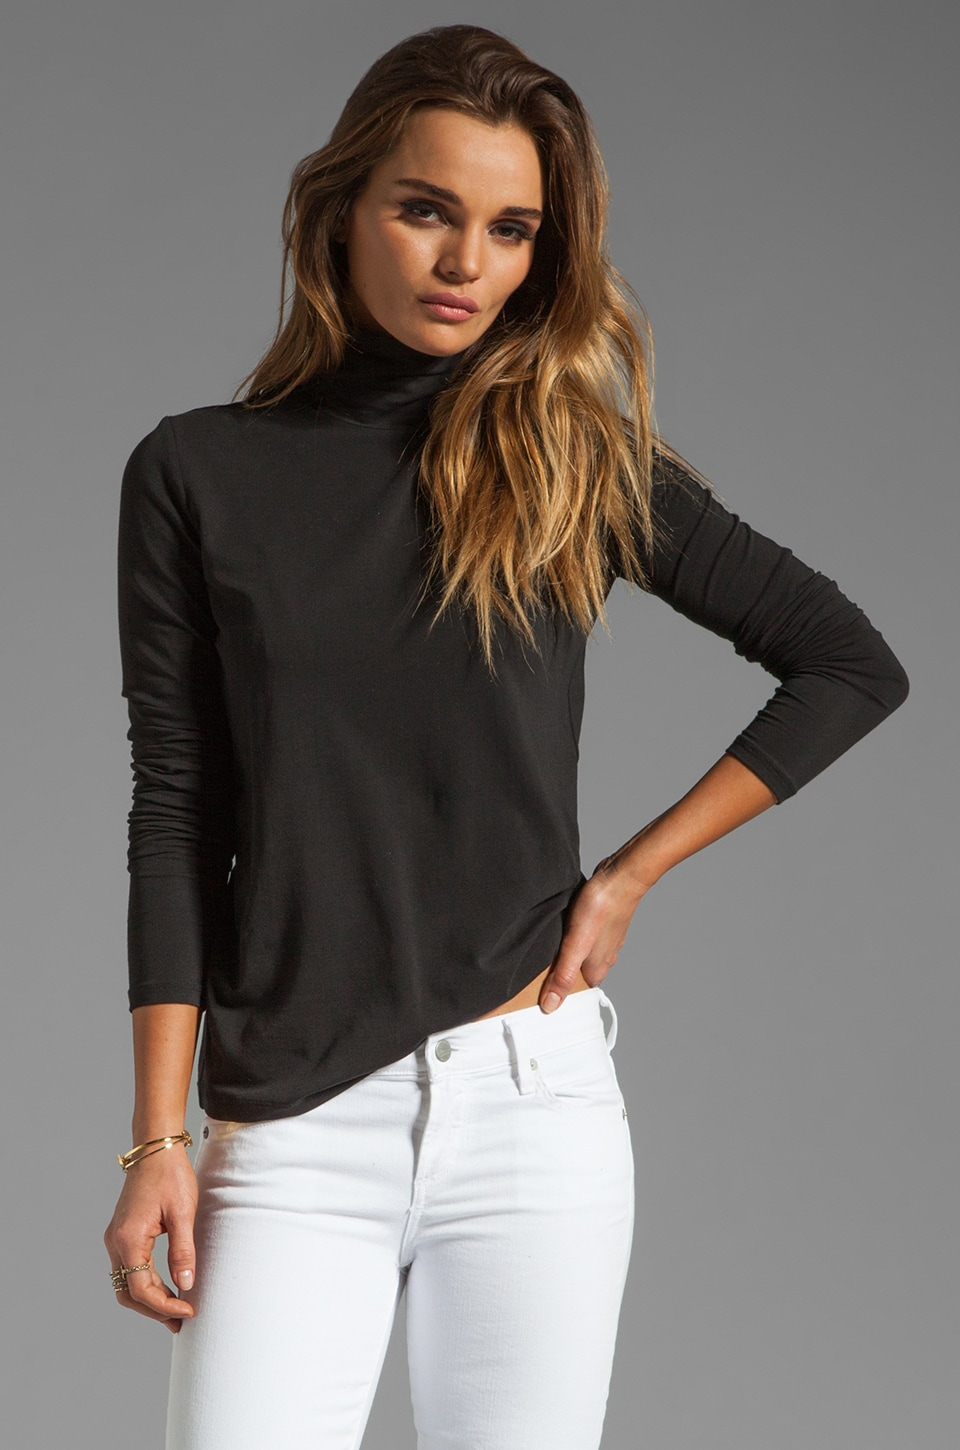 Theory Encase Kloria Long Sleeve Turtleneck Tee in Black